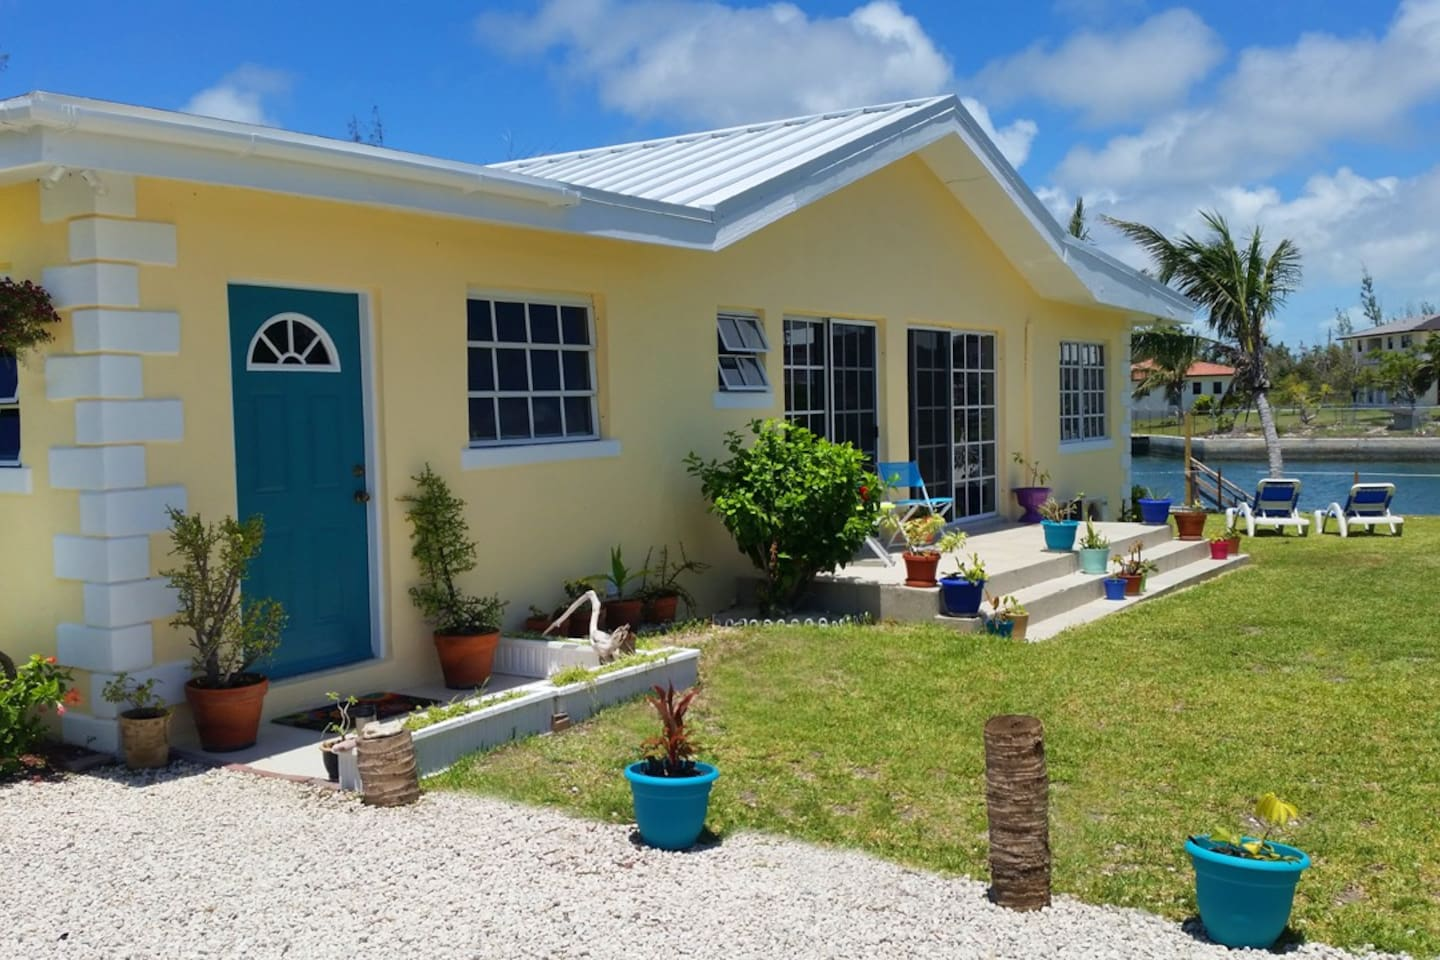 The villa is across from the beach and located on an inland waterway